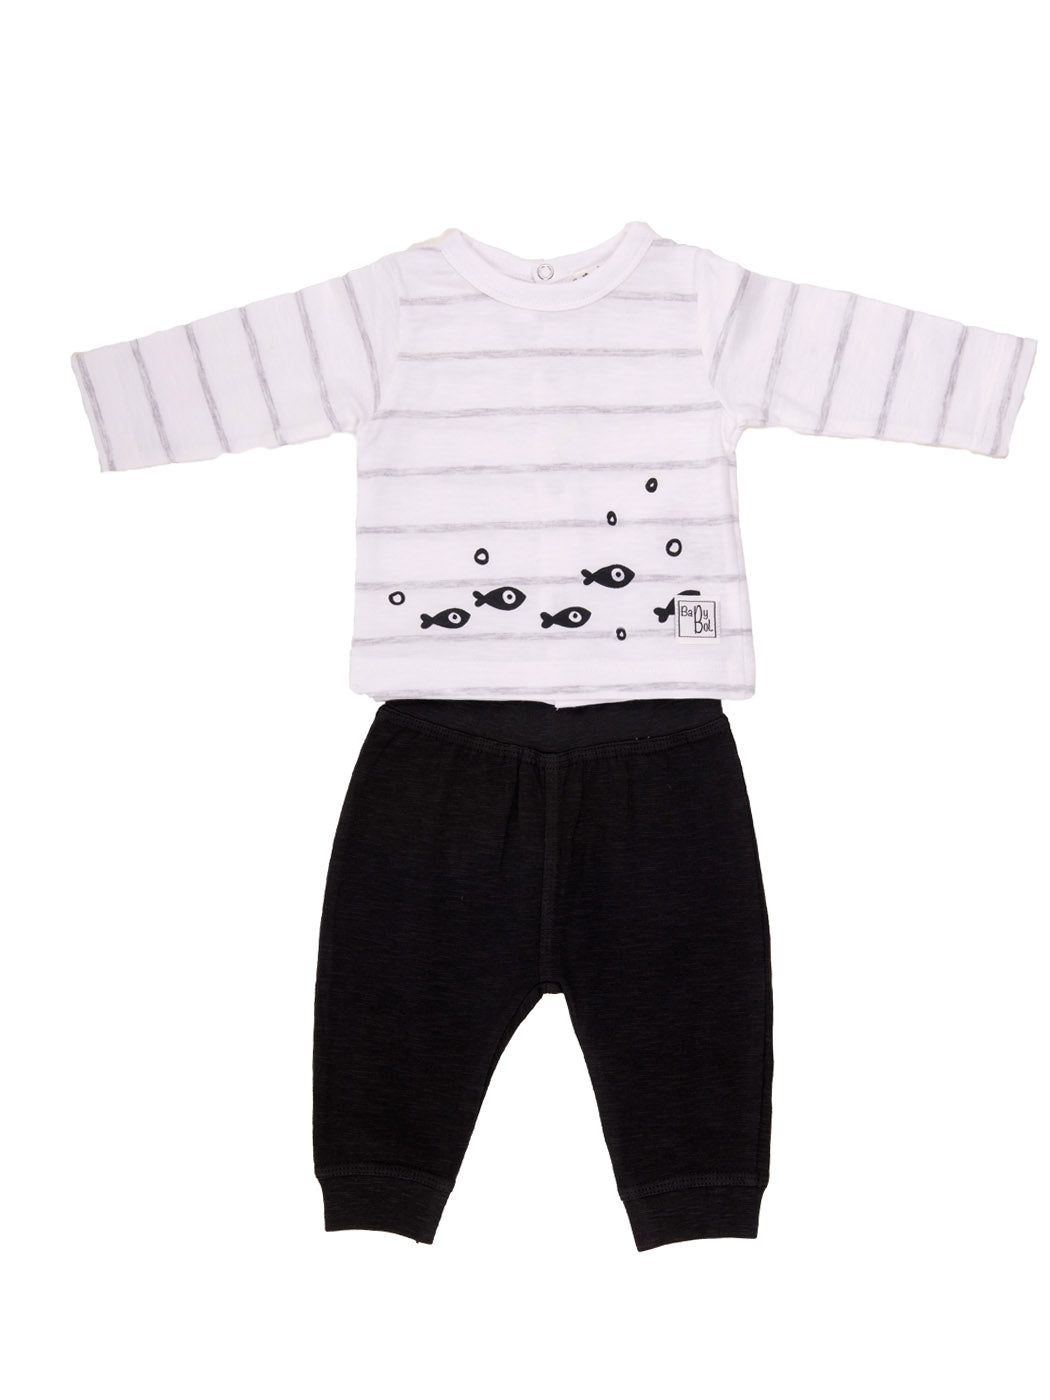 Baby Outfit 2pcs Art. 11815